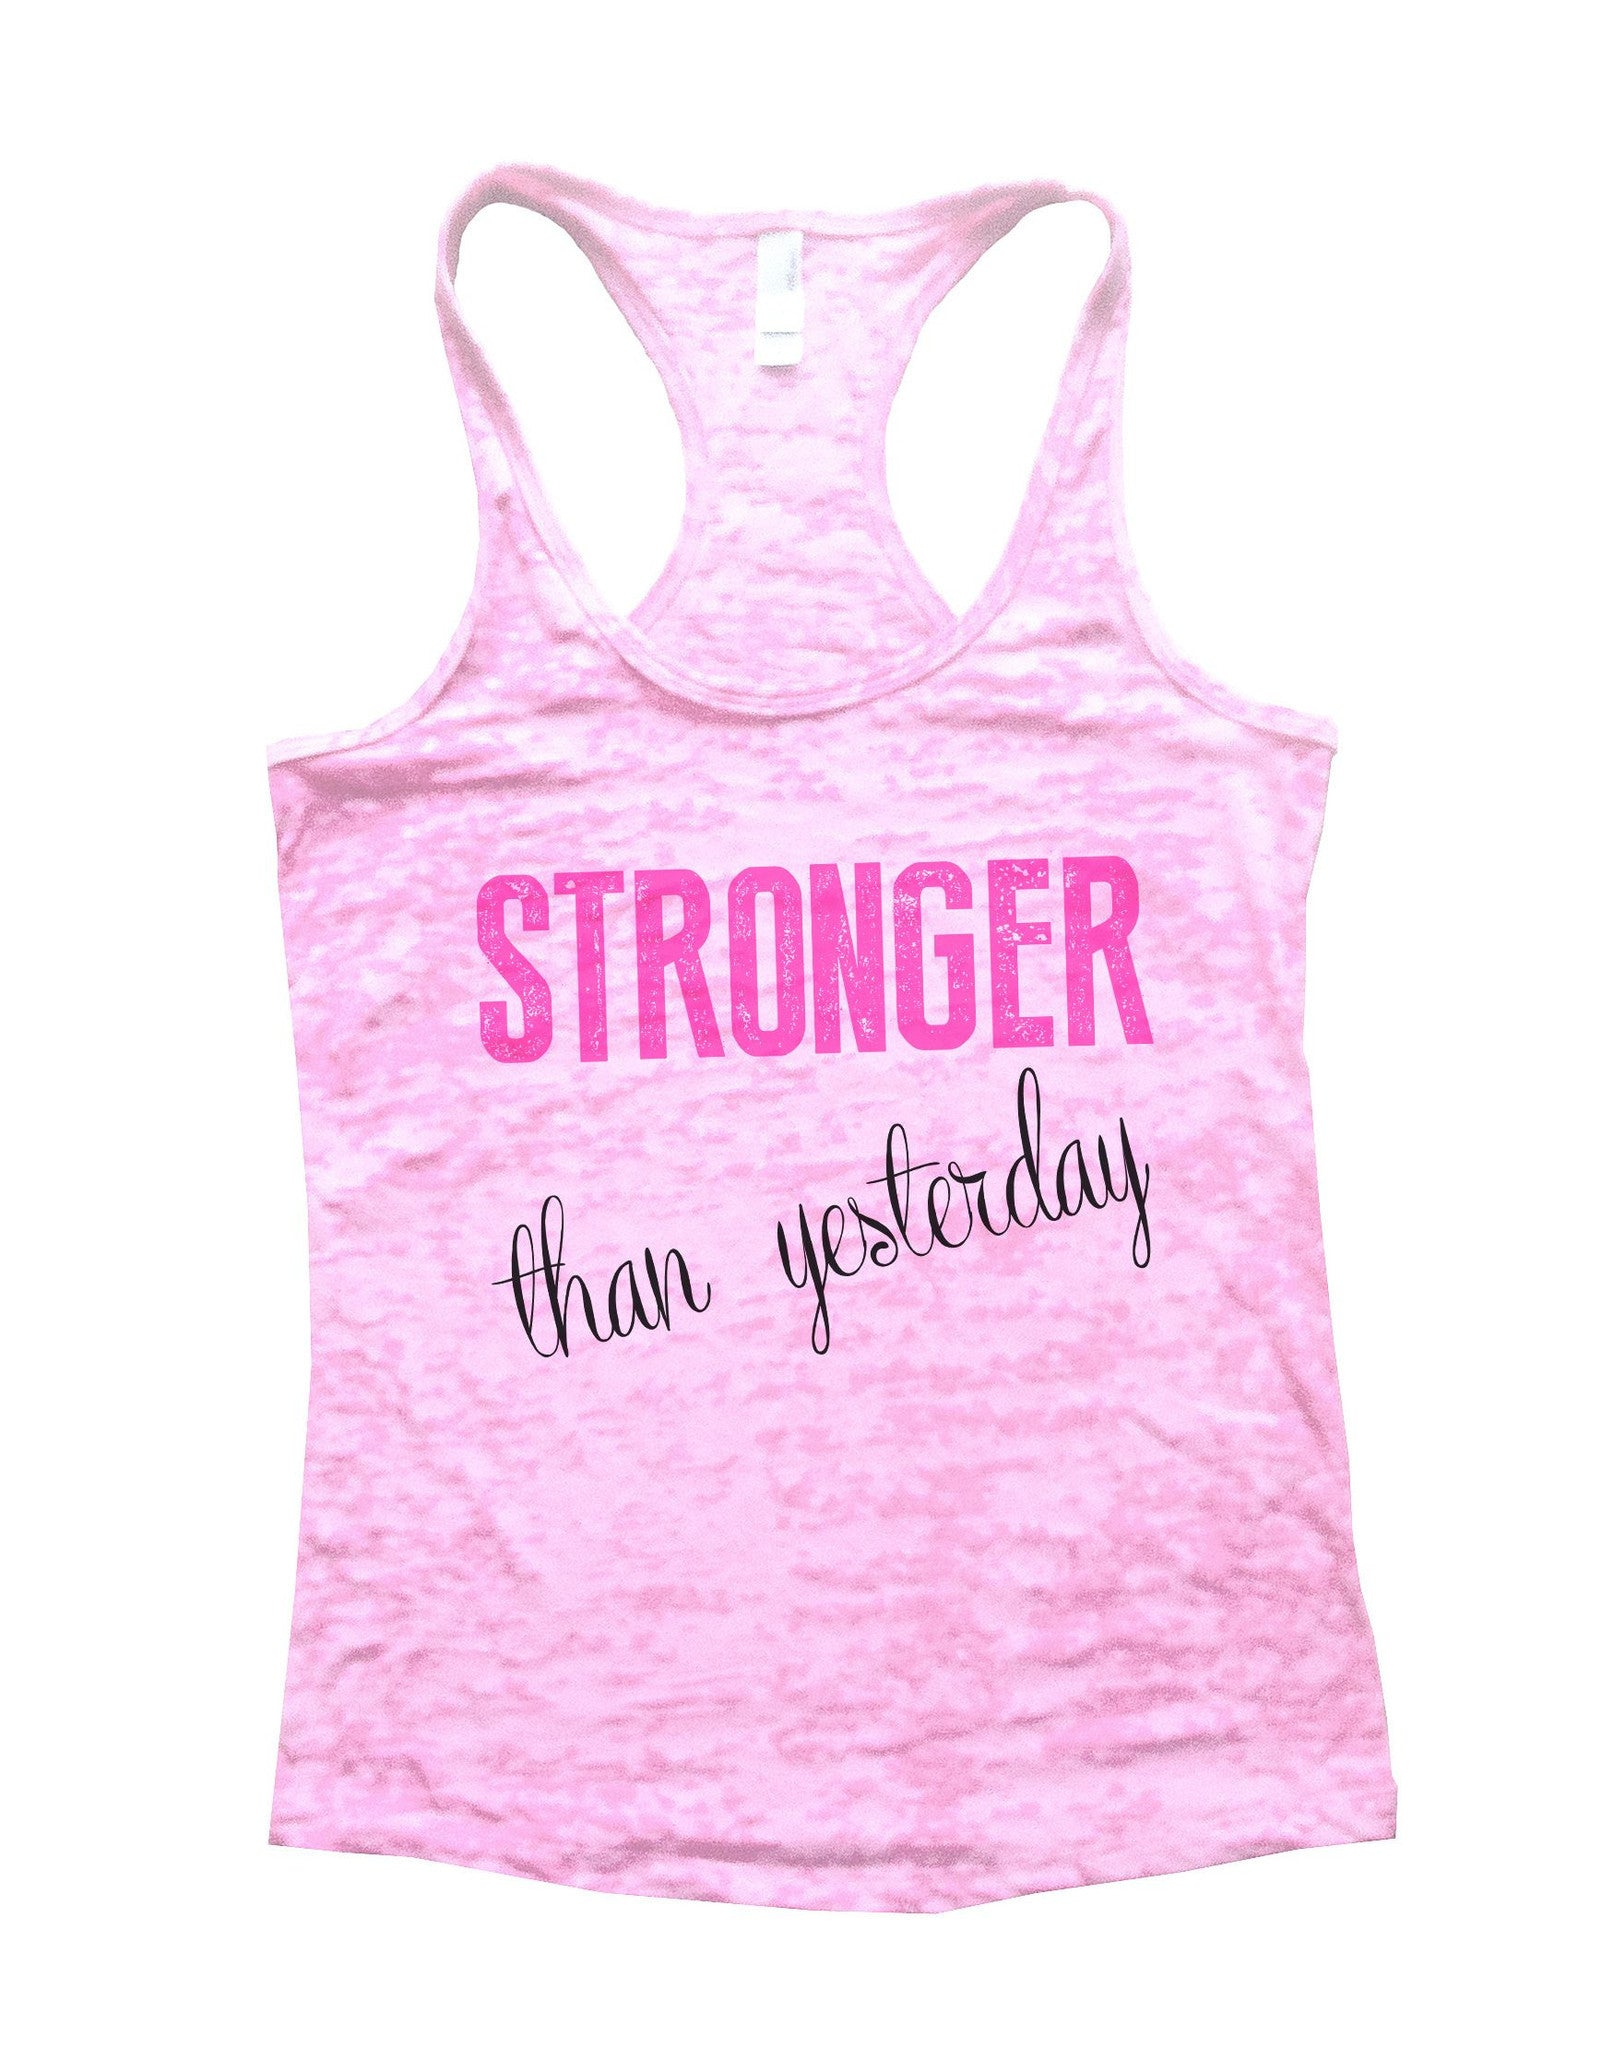 Stronger Than Yesterday Burnout Tank Top By BurnoutTankTops.com - 768 - Funny Shirts Tank Tops Burnouts and Triblends  - 1